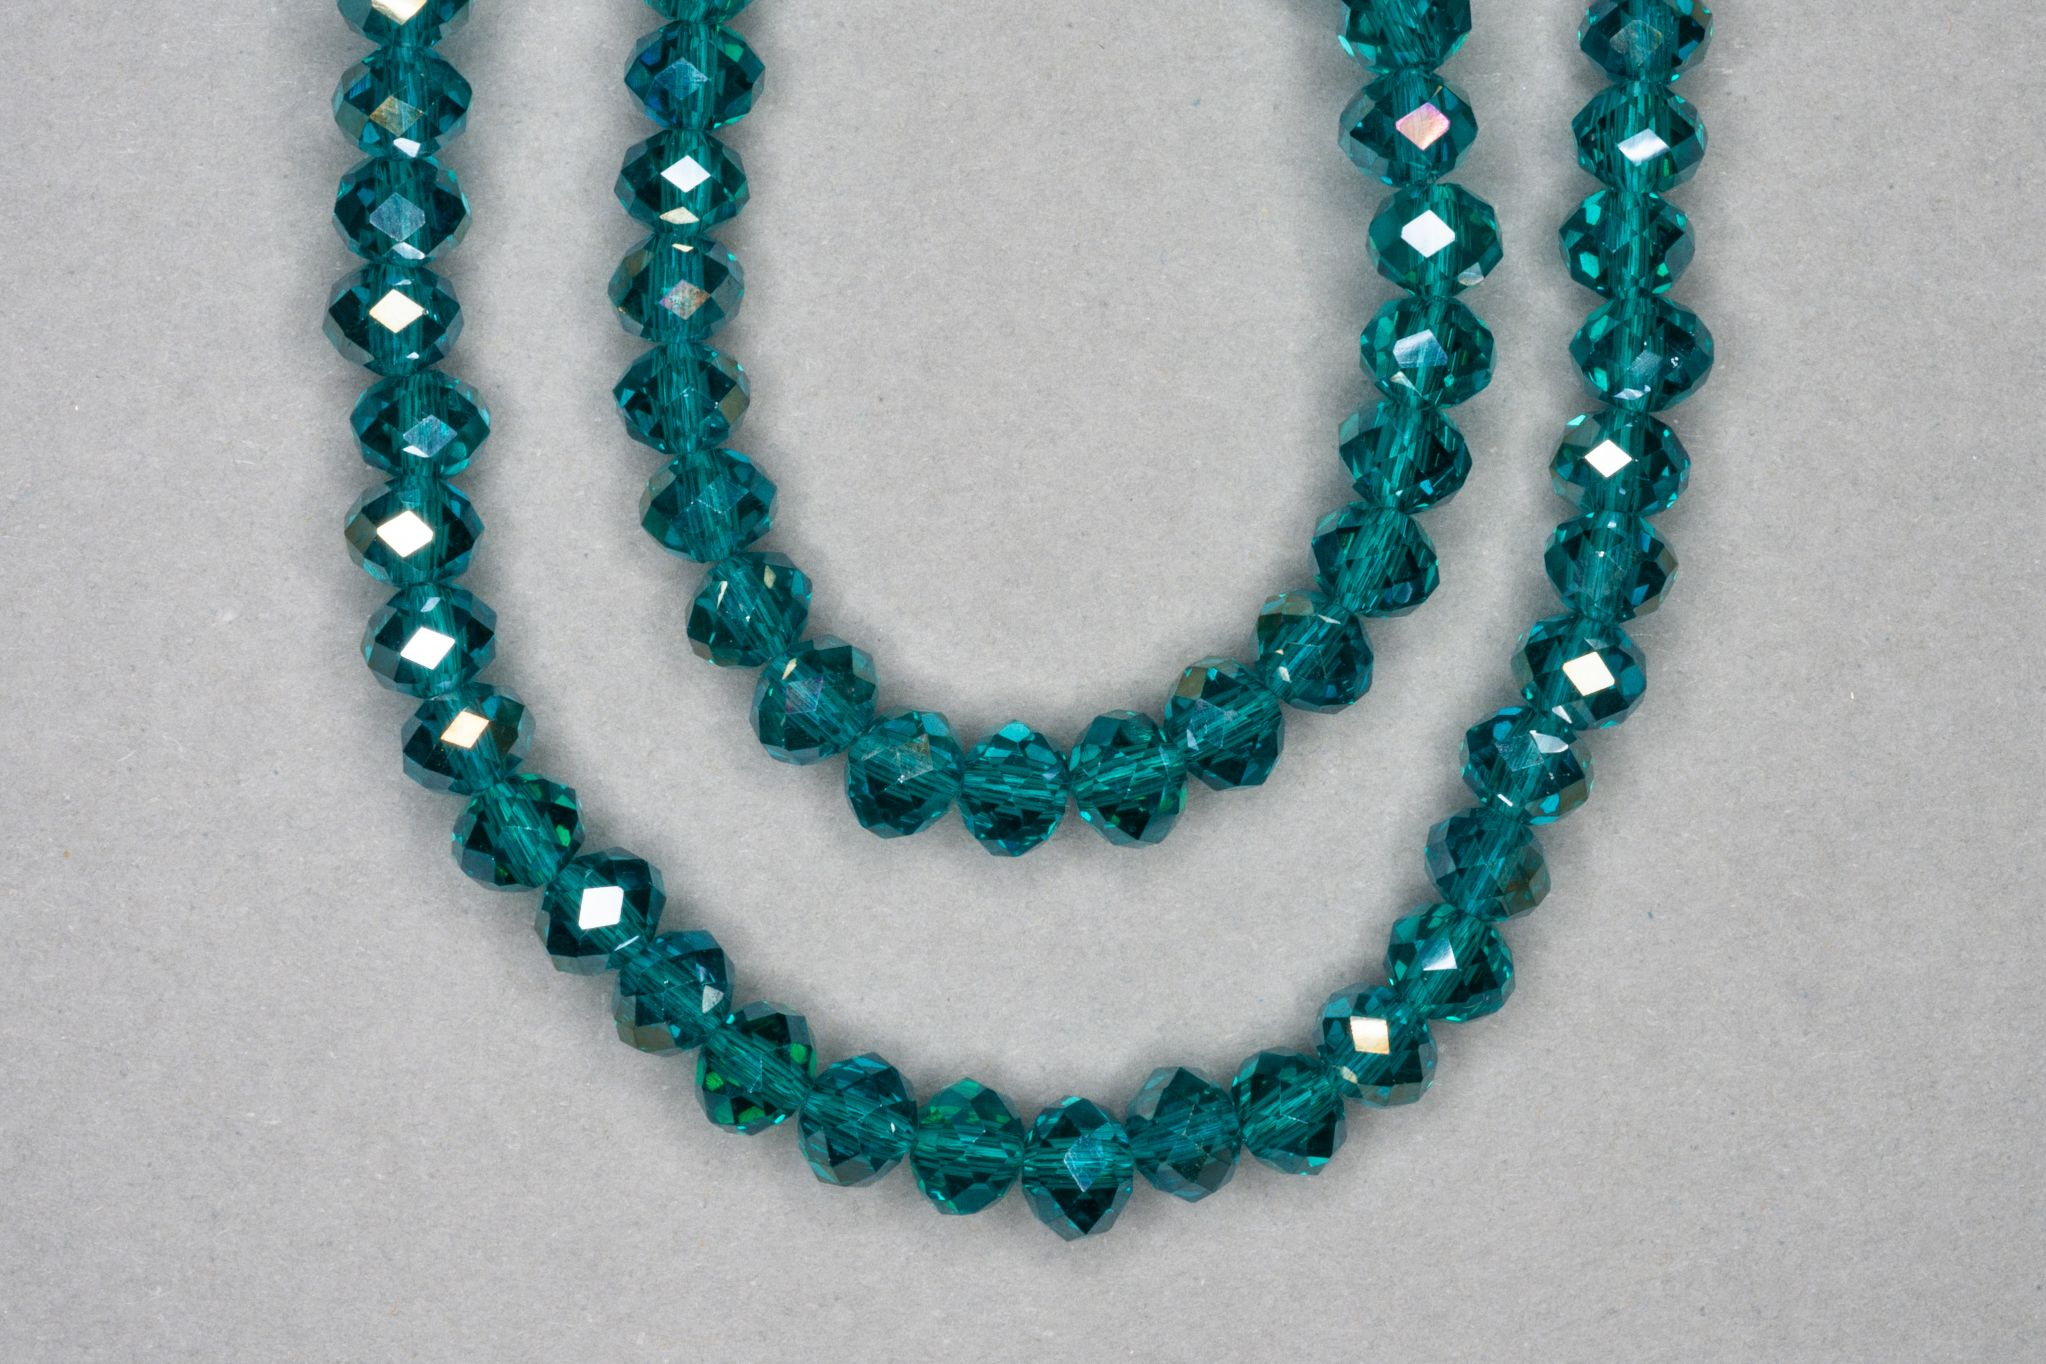 Silver Teal Faceted Glass Beads